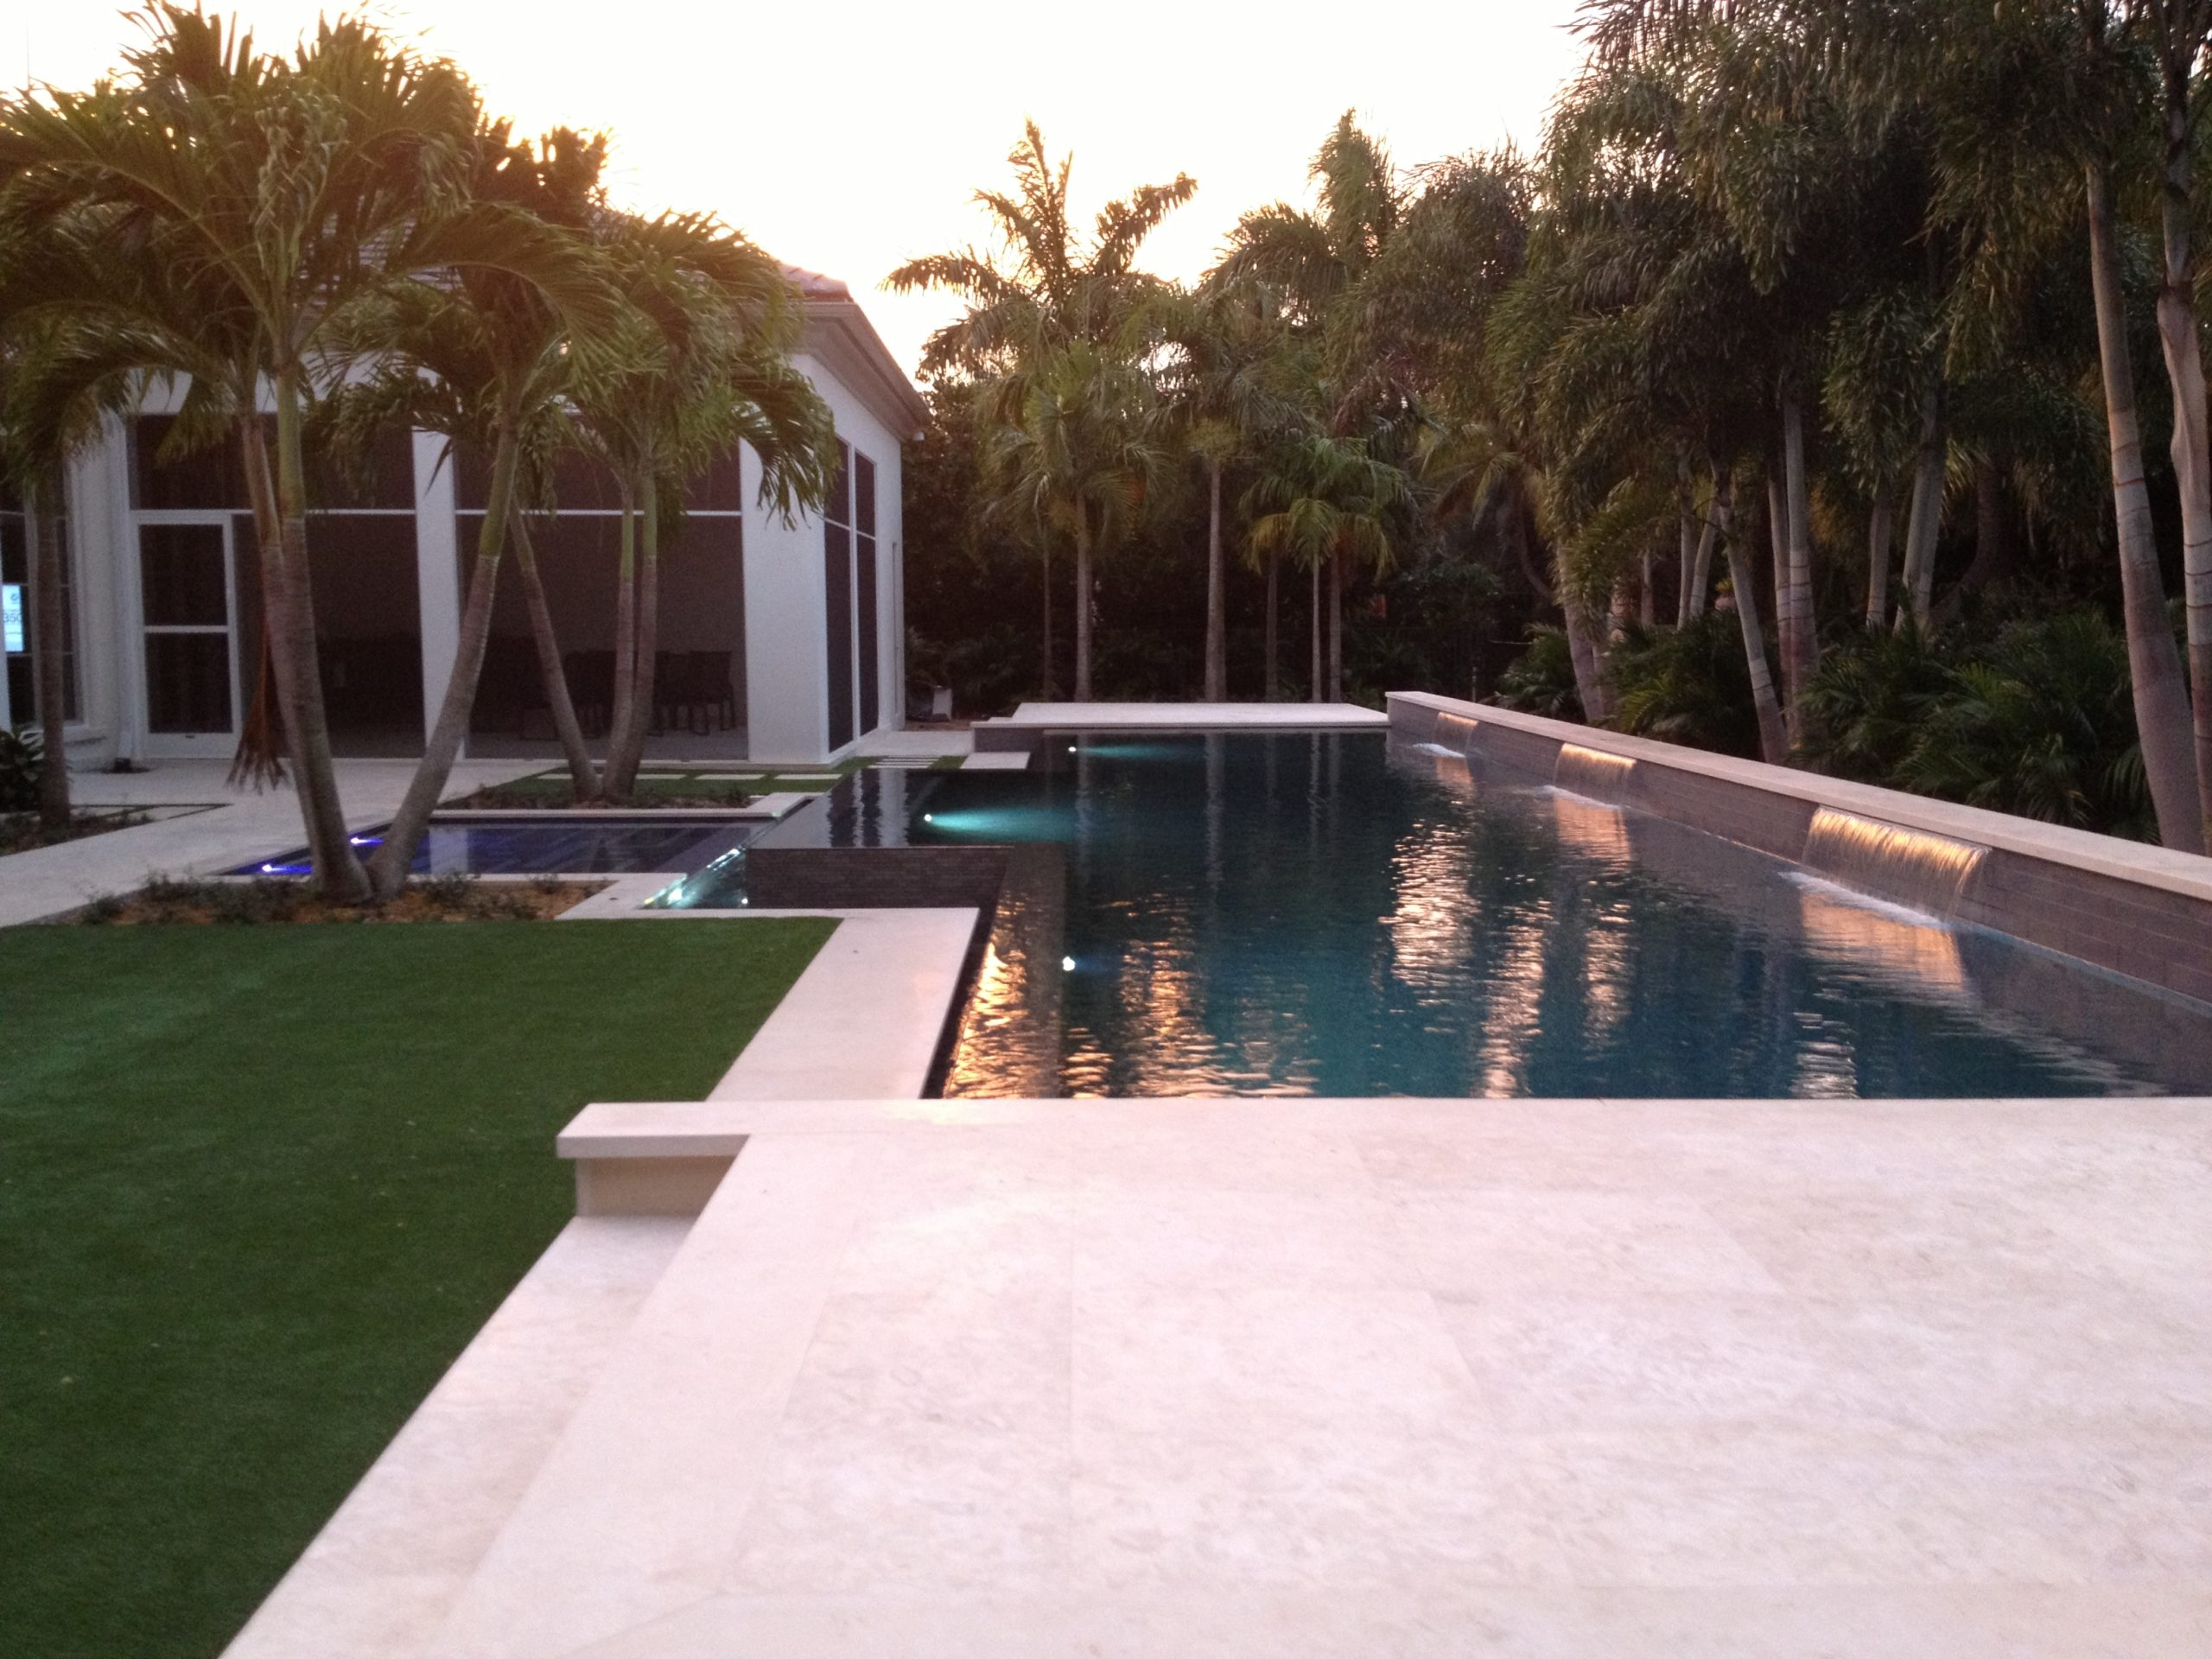 rhr pools of jupiter fl modern pool with led lights and raised wall with sheer decent water feature